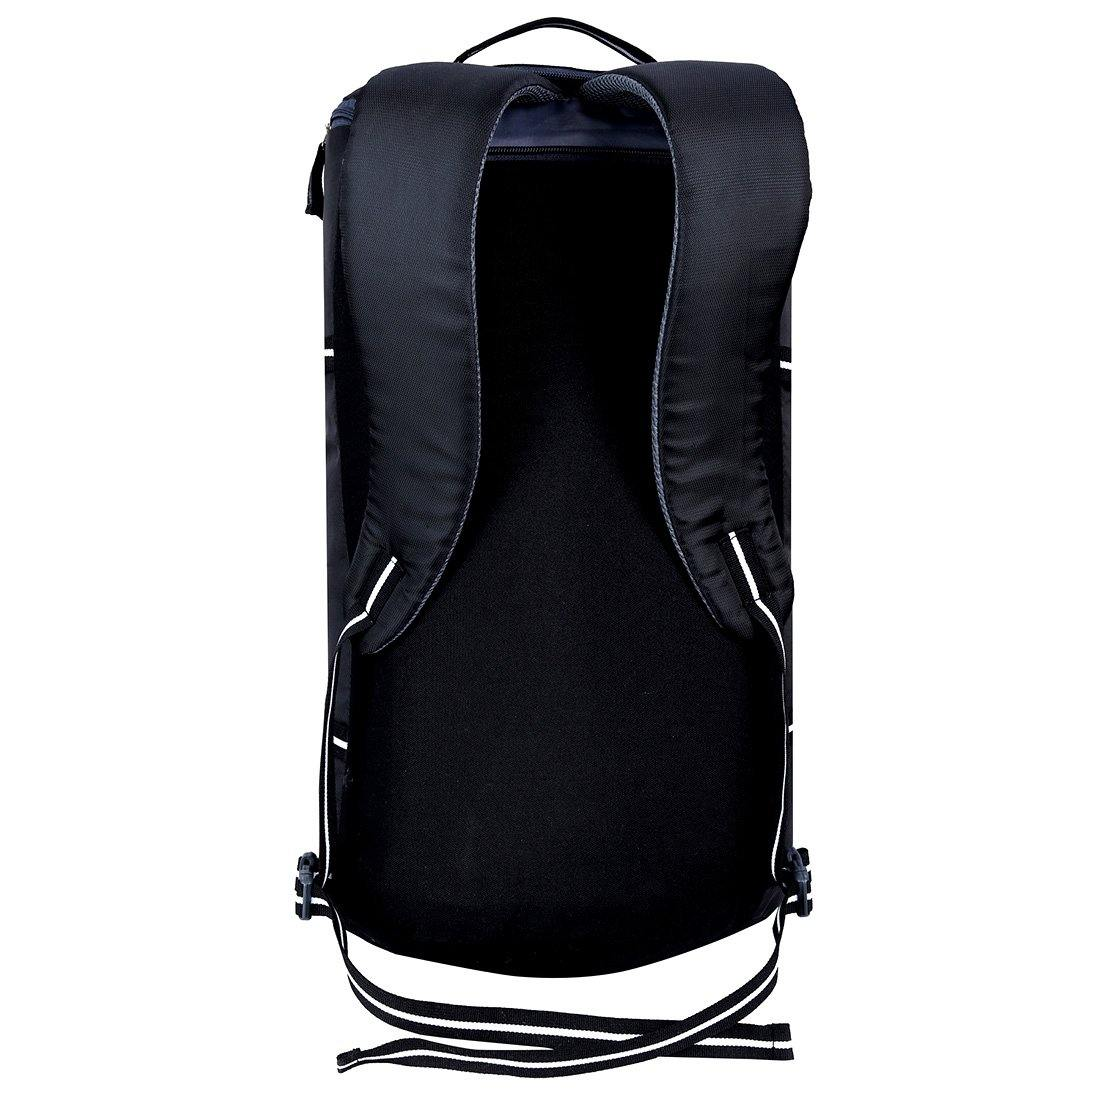 2 in 1 Rucksack/Duffel Bag with Shoe Pocket